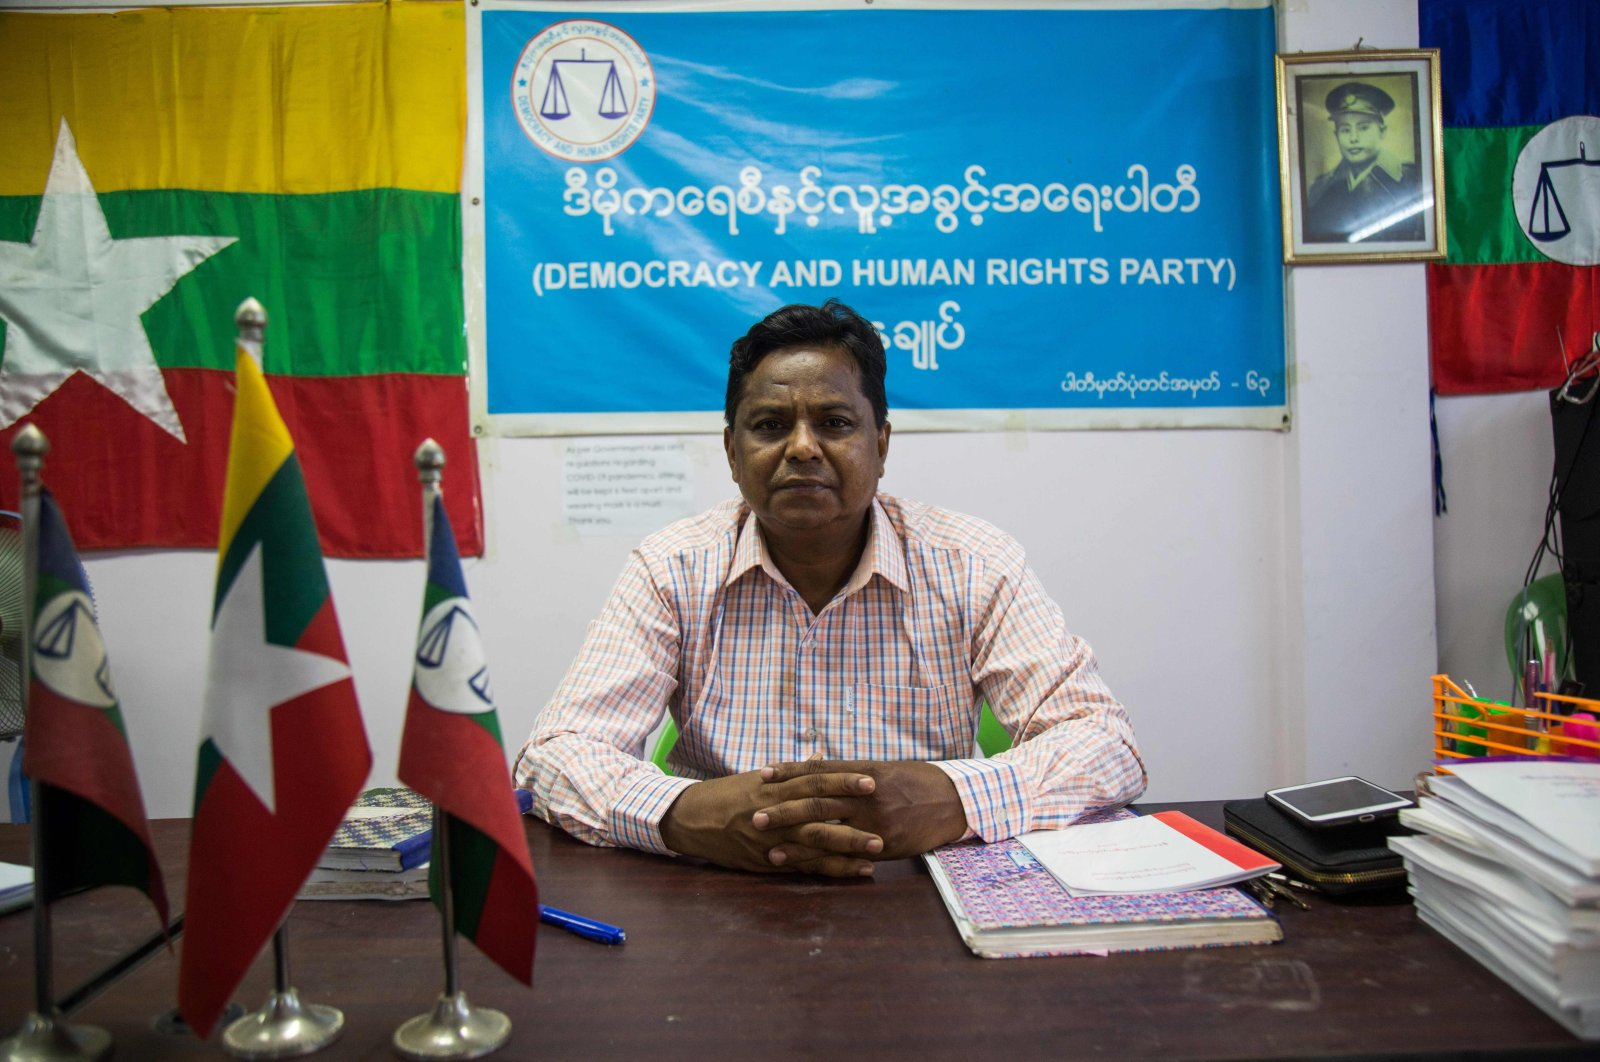 Rohingya candidate Abdul Rasheed, a member of the Democracy and Human Rights Party poses for a photo in the party's office, Yangon, Aug.12, 2020. (AFP Photo)